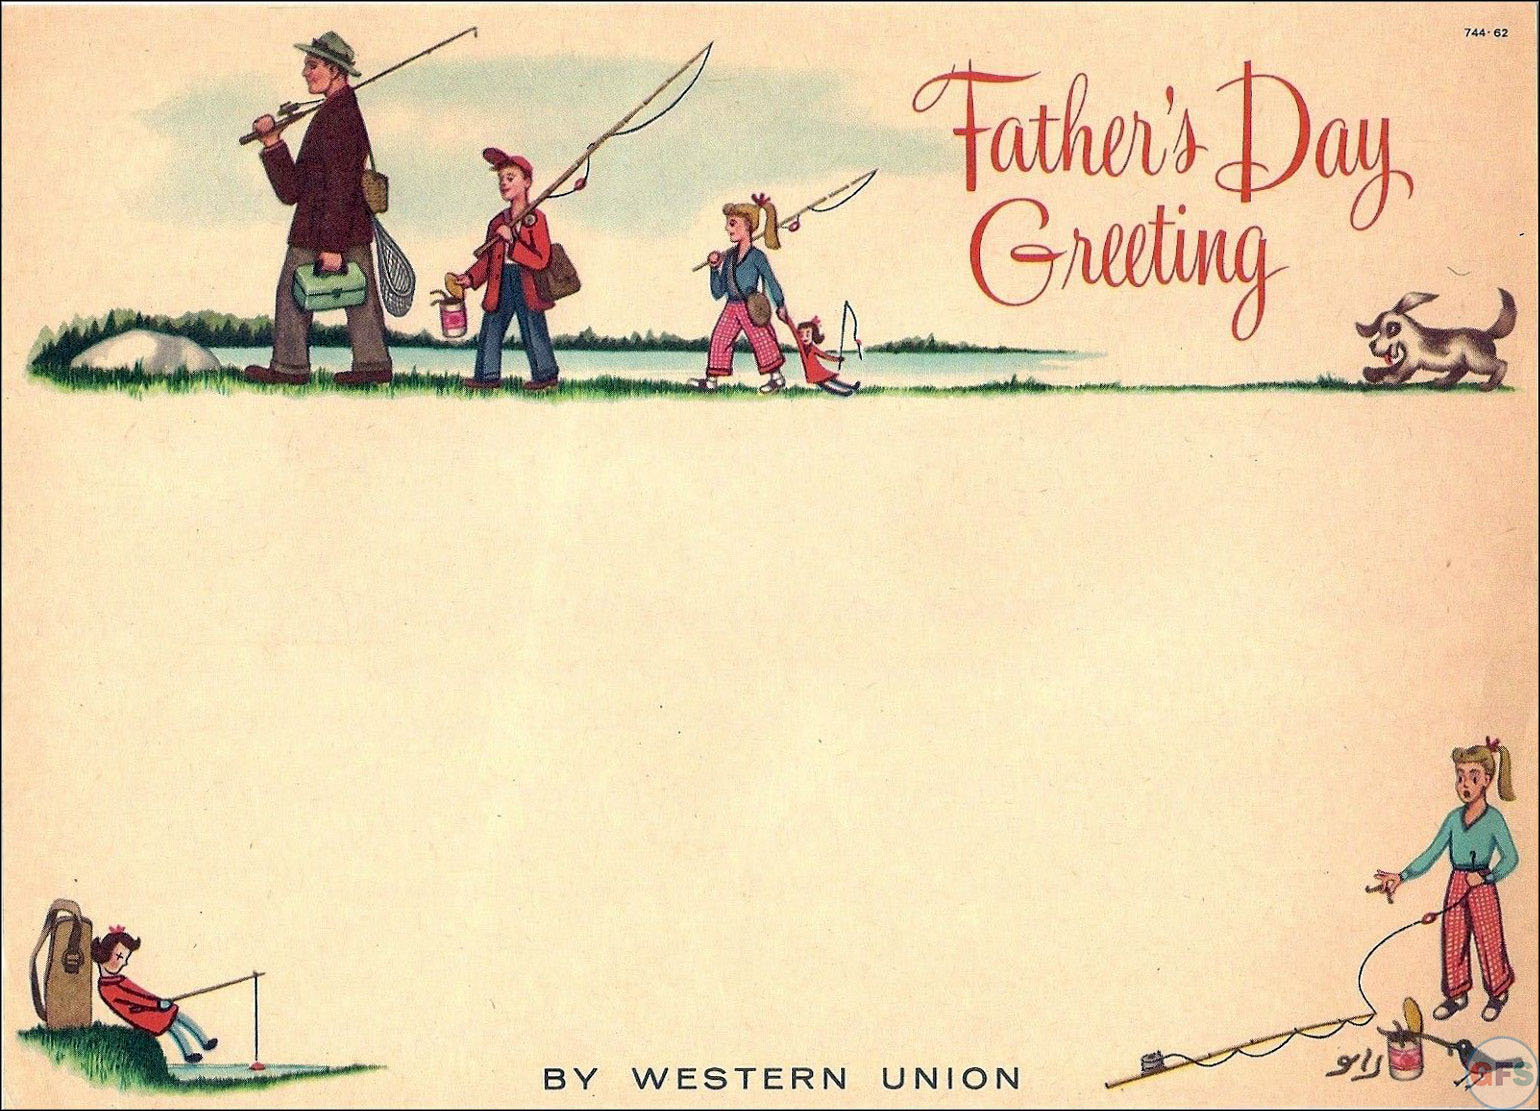 Western Union Father's Day Telegram